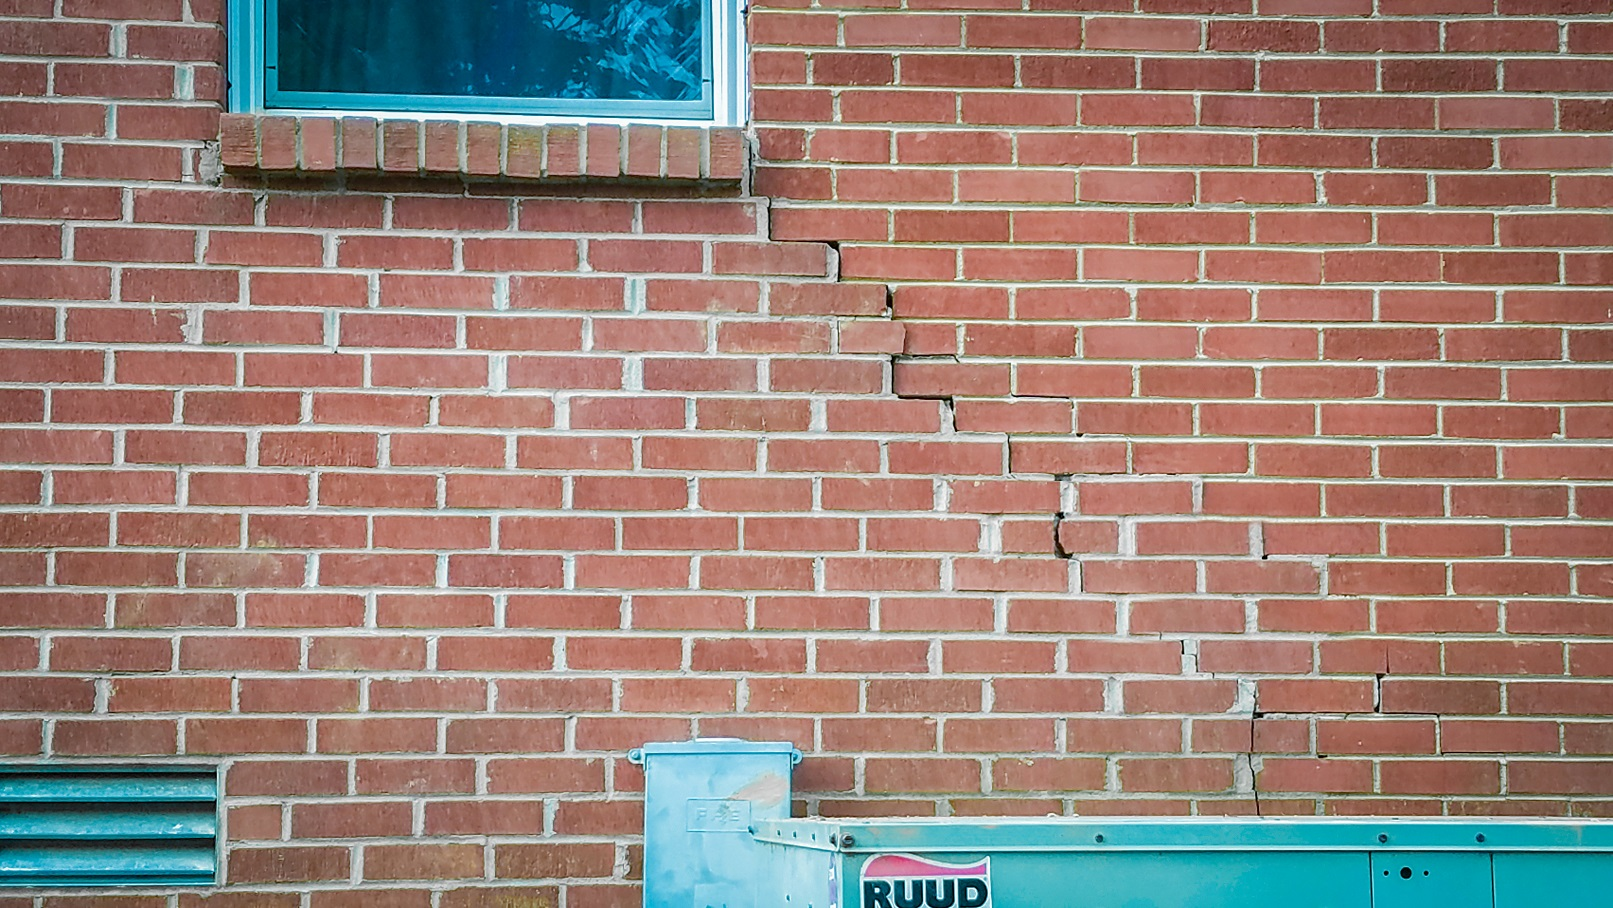 crack in brickwork of a home